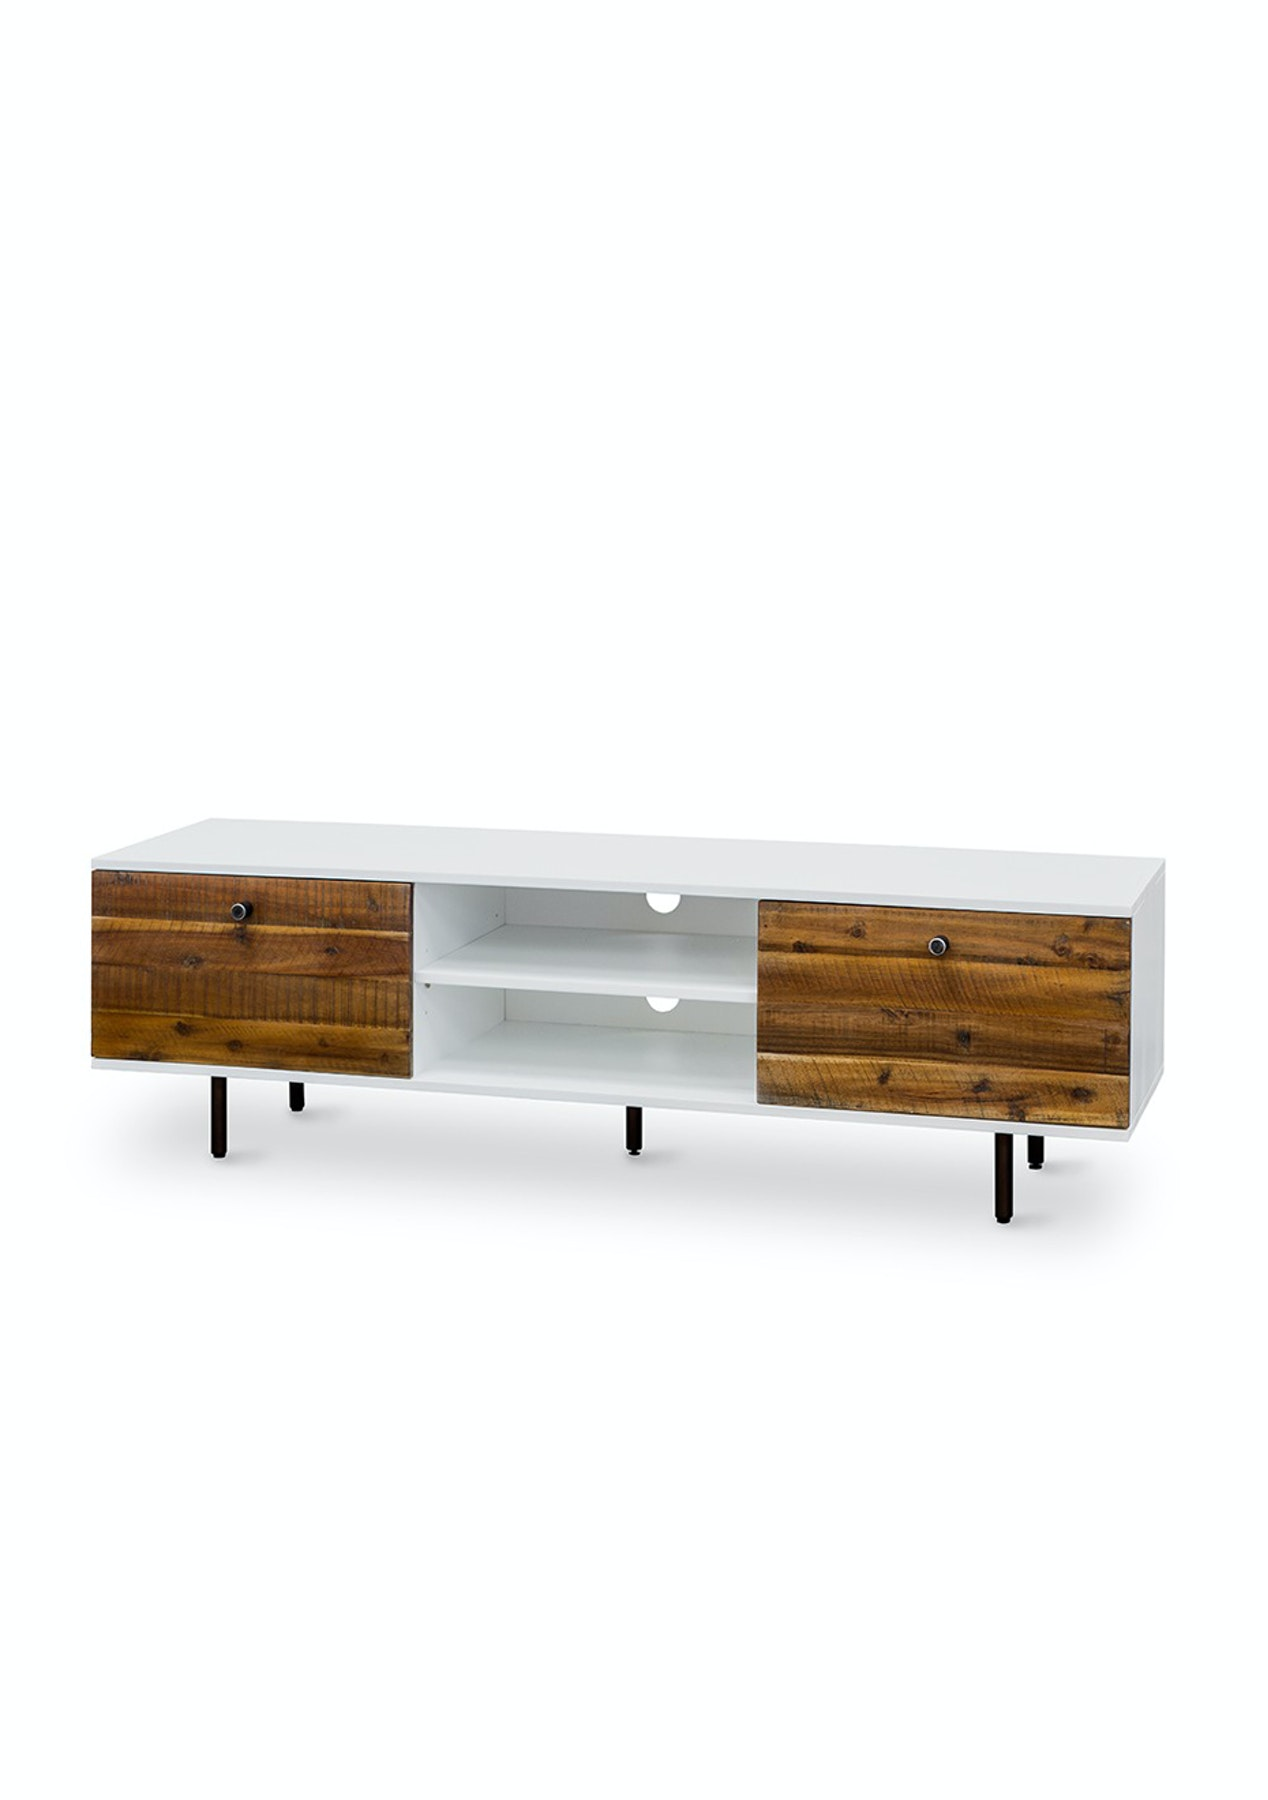 Furniture by design rustic madrid tv stand new for Furniture madrid